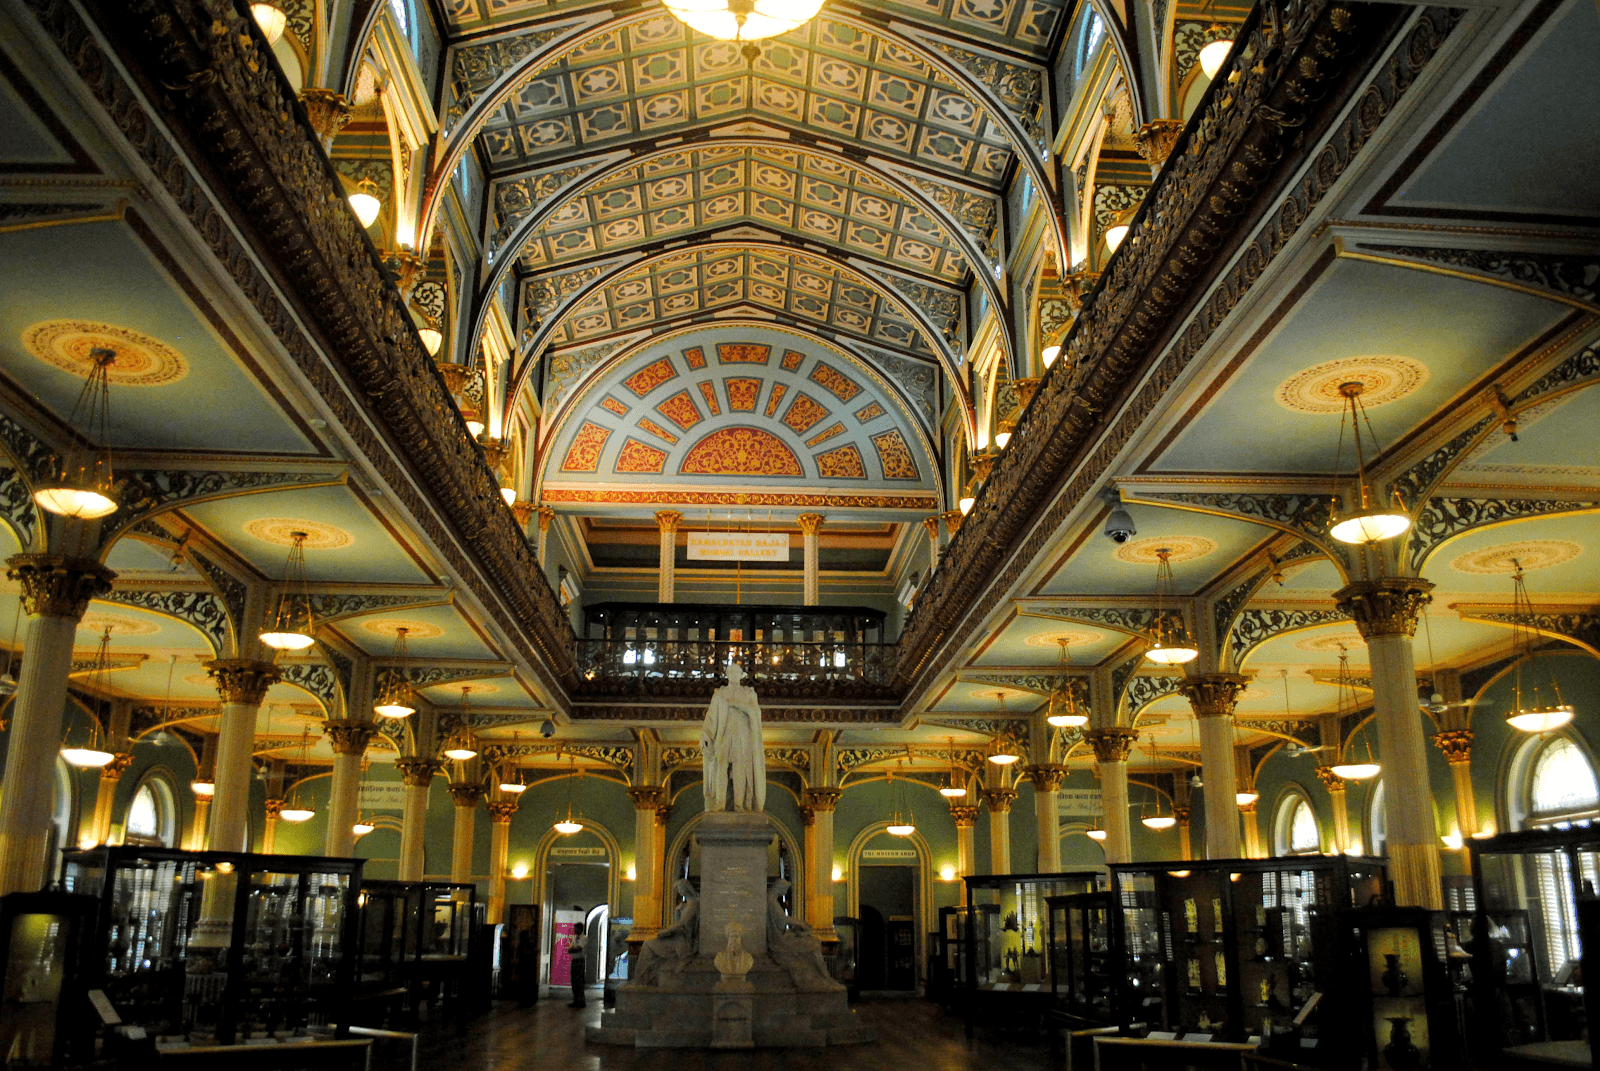 Things to do in Mumbai with family: Dr. Bhau Daji Lad Mumbai City Museum